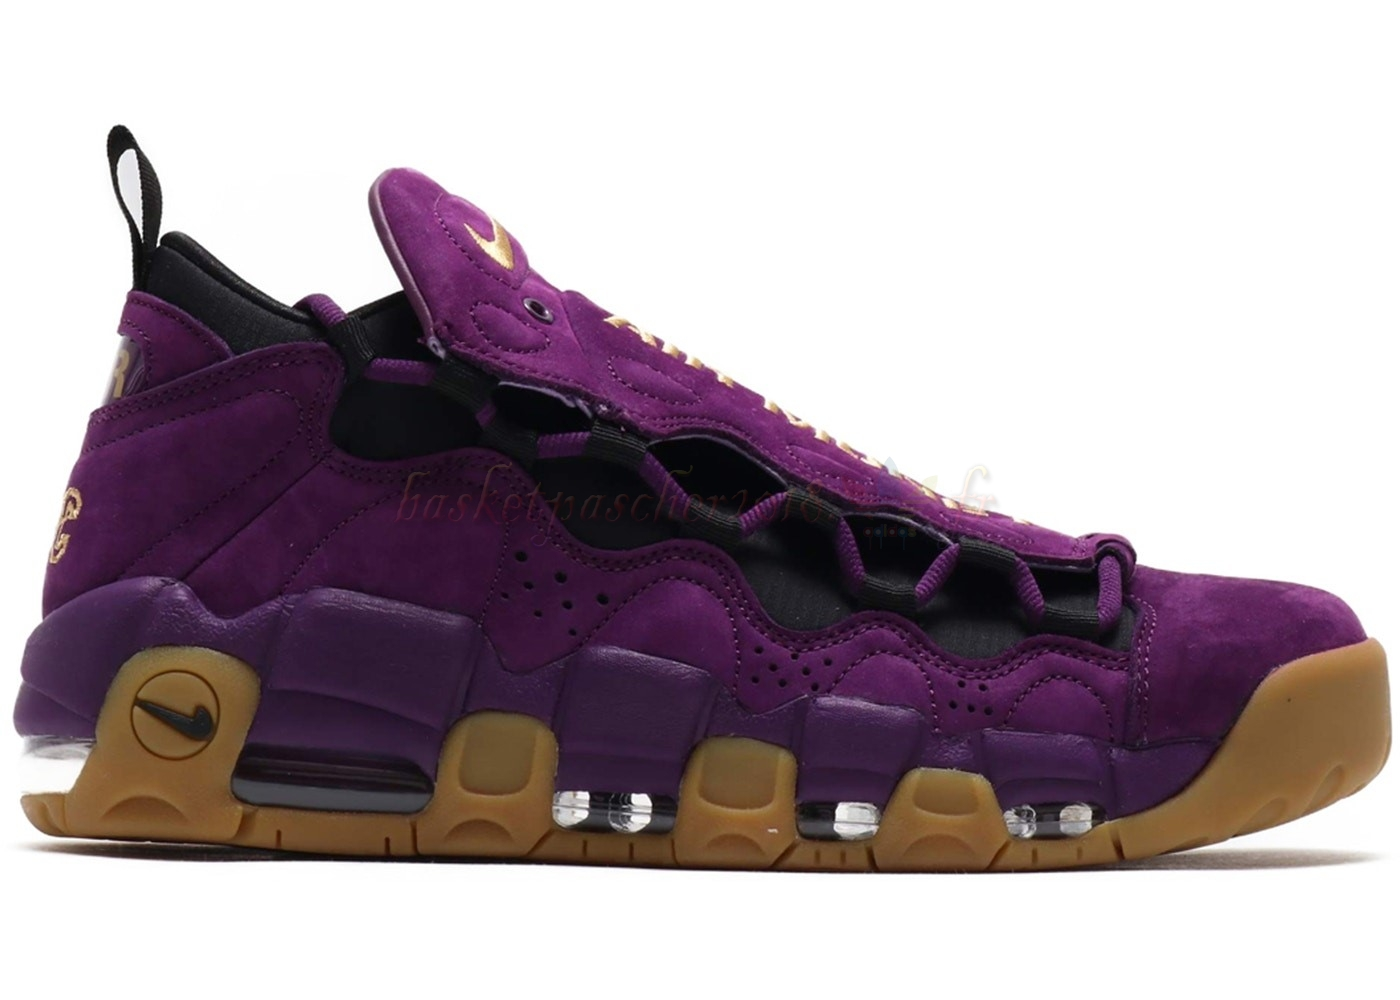 "Vente Chaude Chaussures De Basketball Homme Air More Money ""Night Purple"" Pourpre Marron (ar5401-500) Pas Cher"